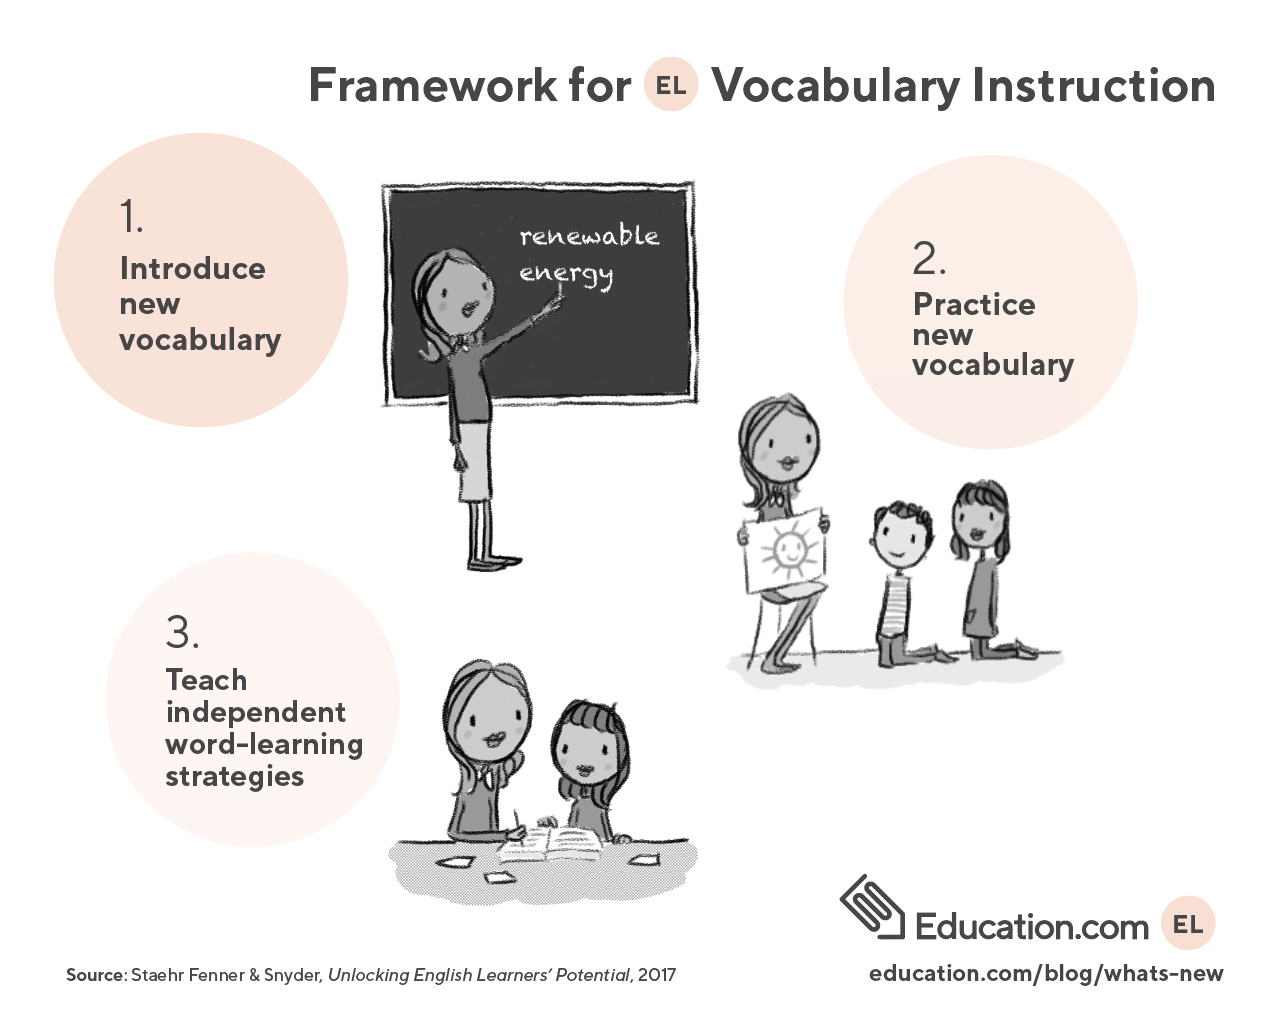 Example of wocabulary instruction framework